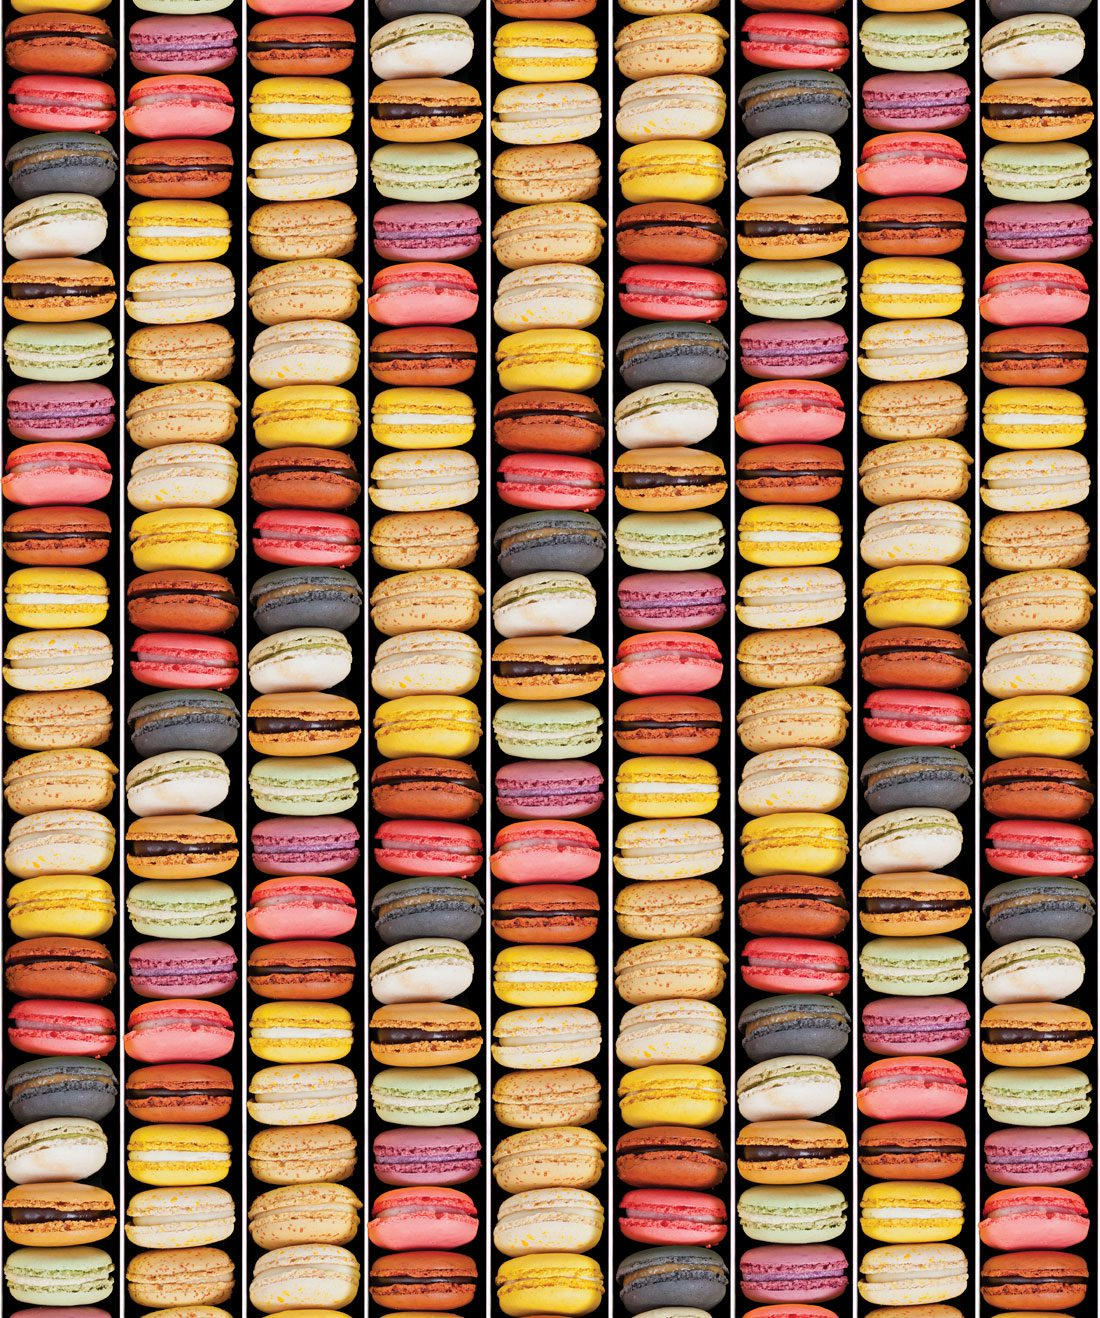 Macarons Wallpaper